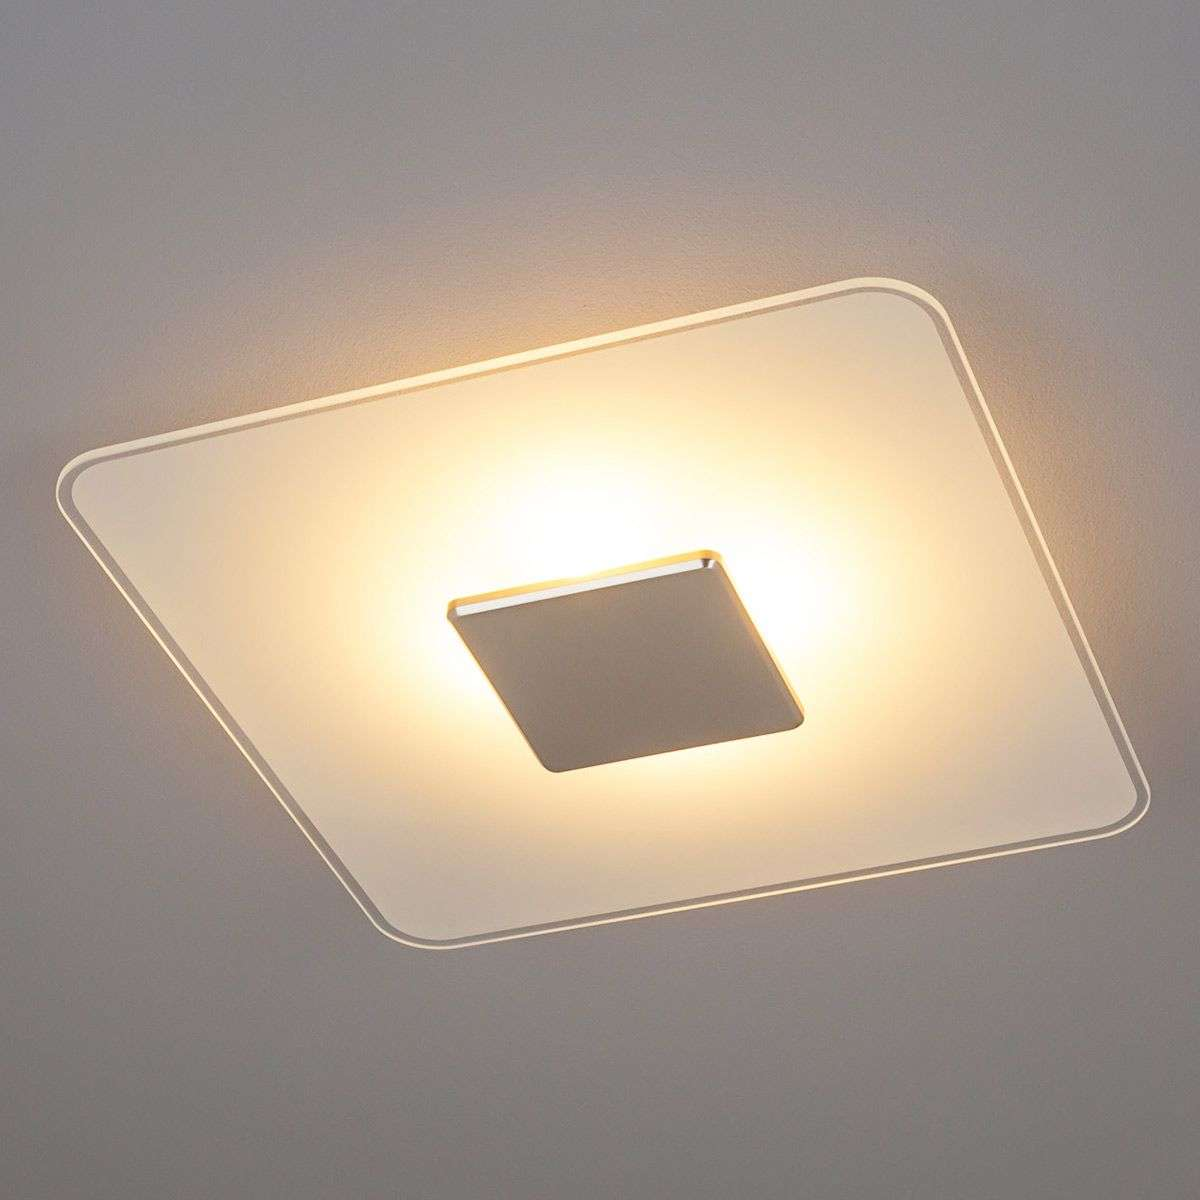 Dimmable Glass Uk Ptrice